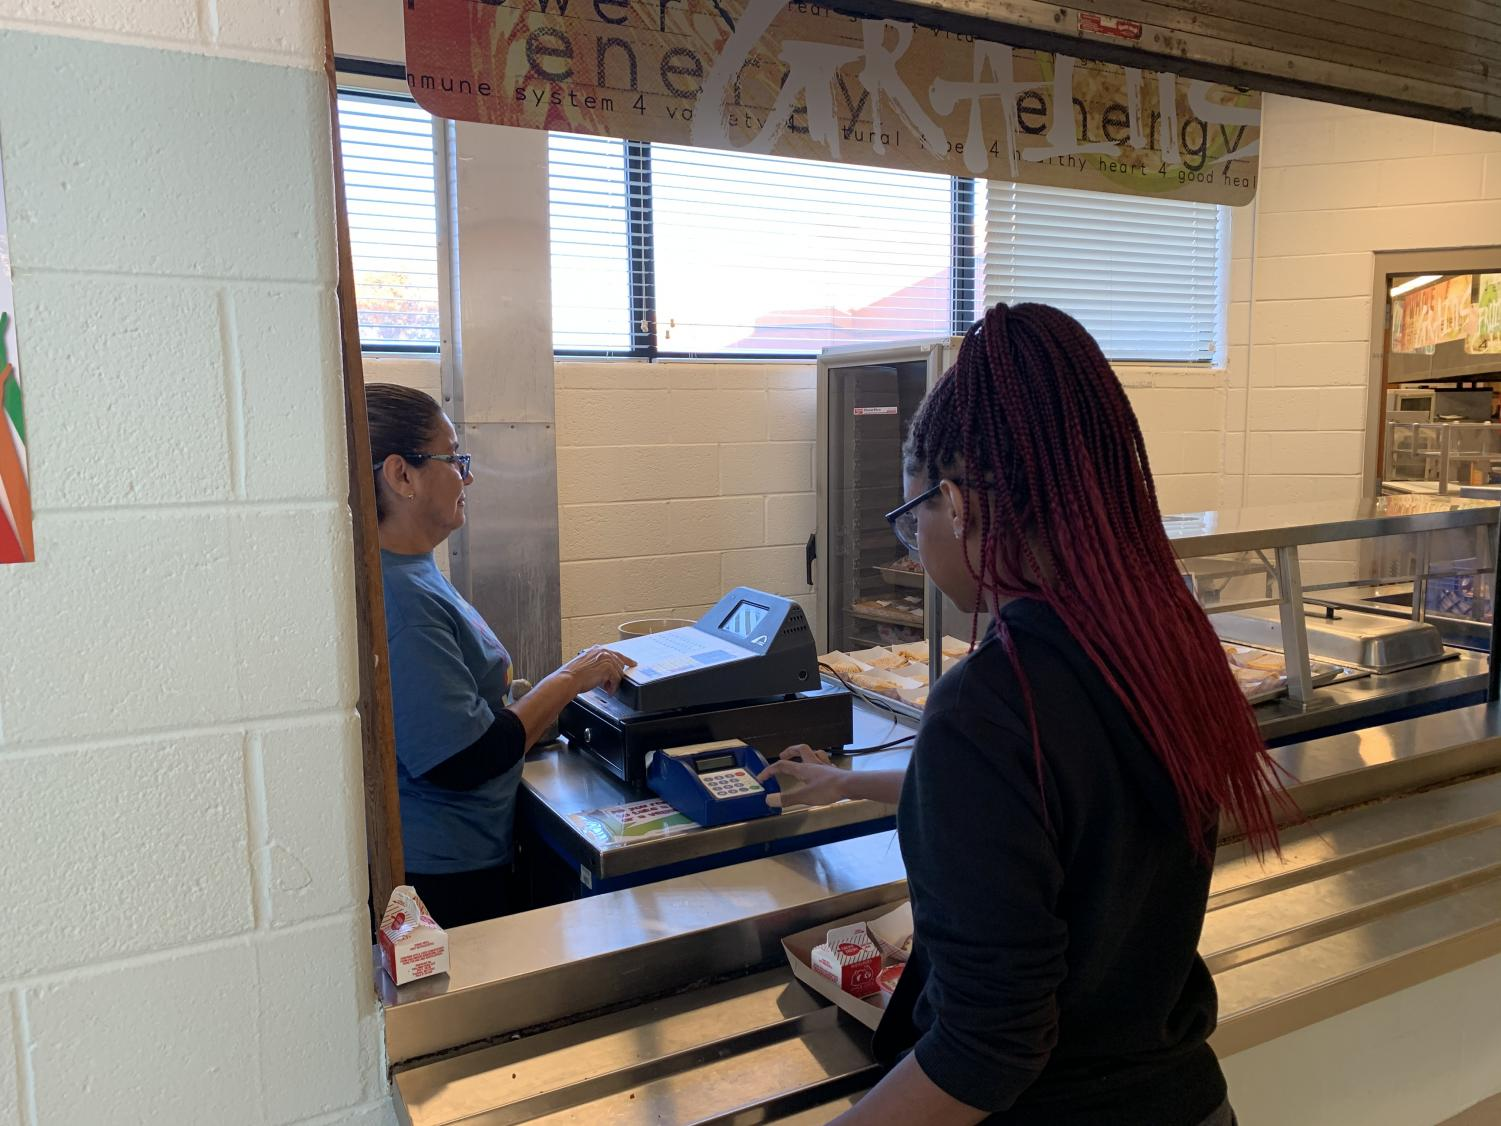 Freshman Destiny Hyman checks out at the after-school supper program, which is available to all students participating in Rec Zone or other extracurricular activities.